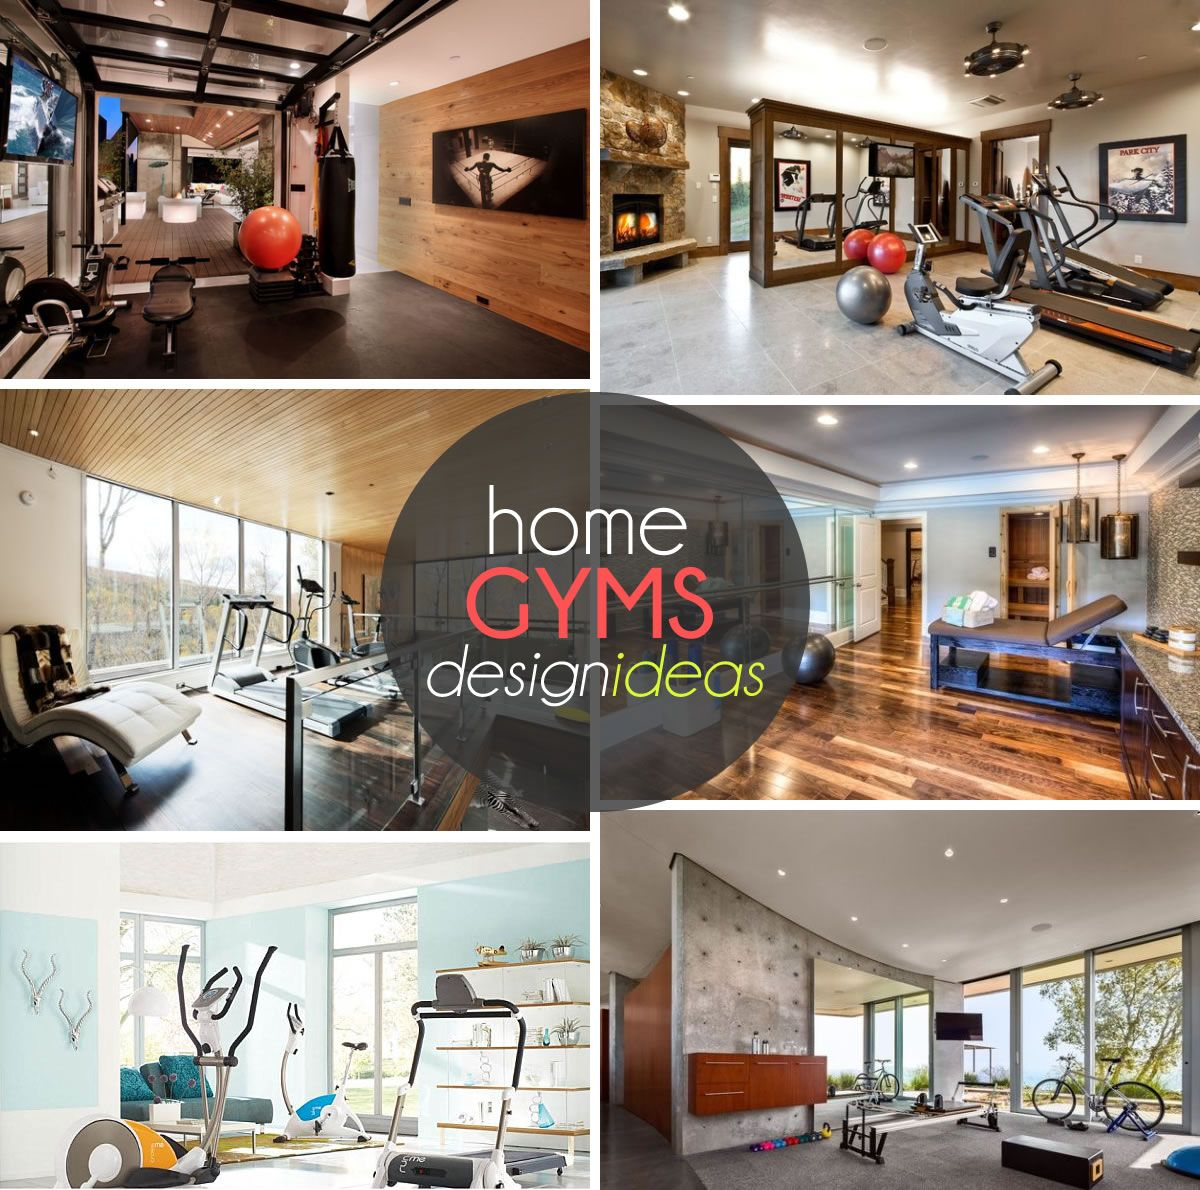 Home House Design Ideas: Gym Interior, Fitness Design And